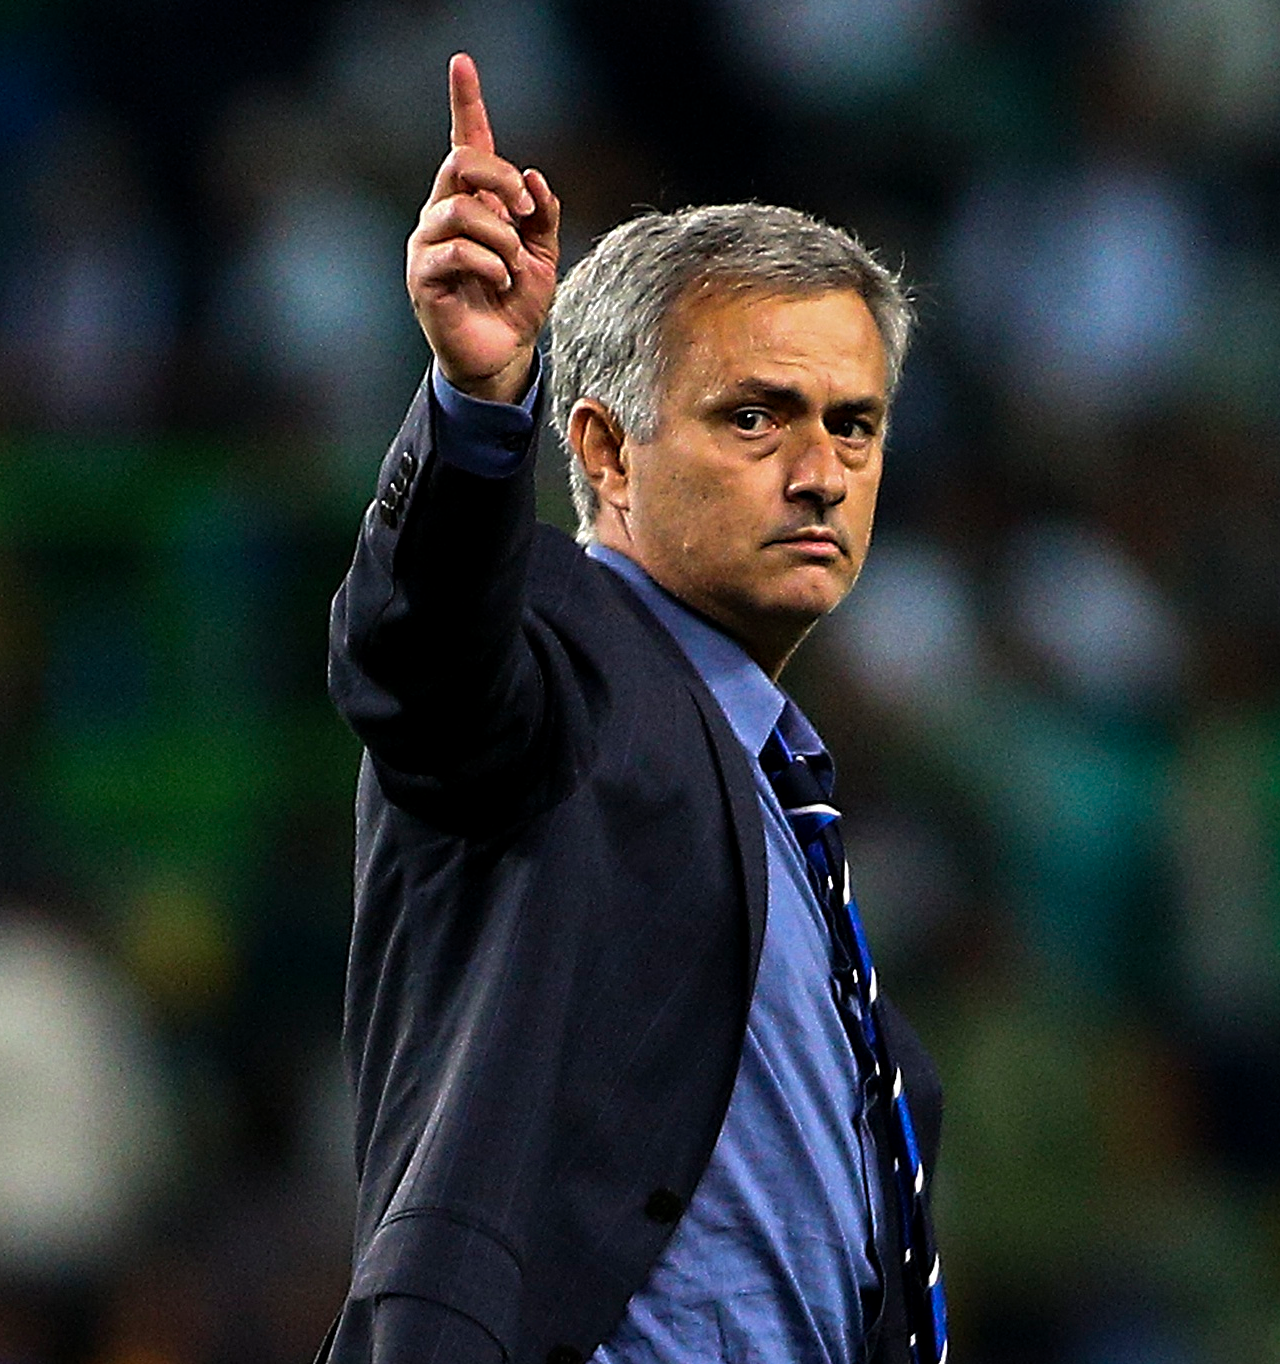 Mourinho Plans Instant Return After Chelsea Sacking